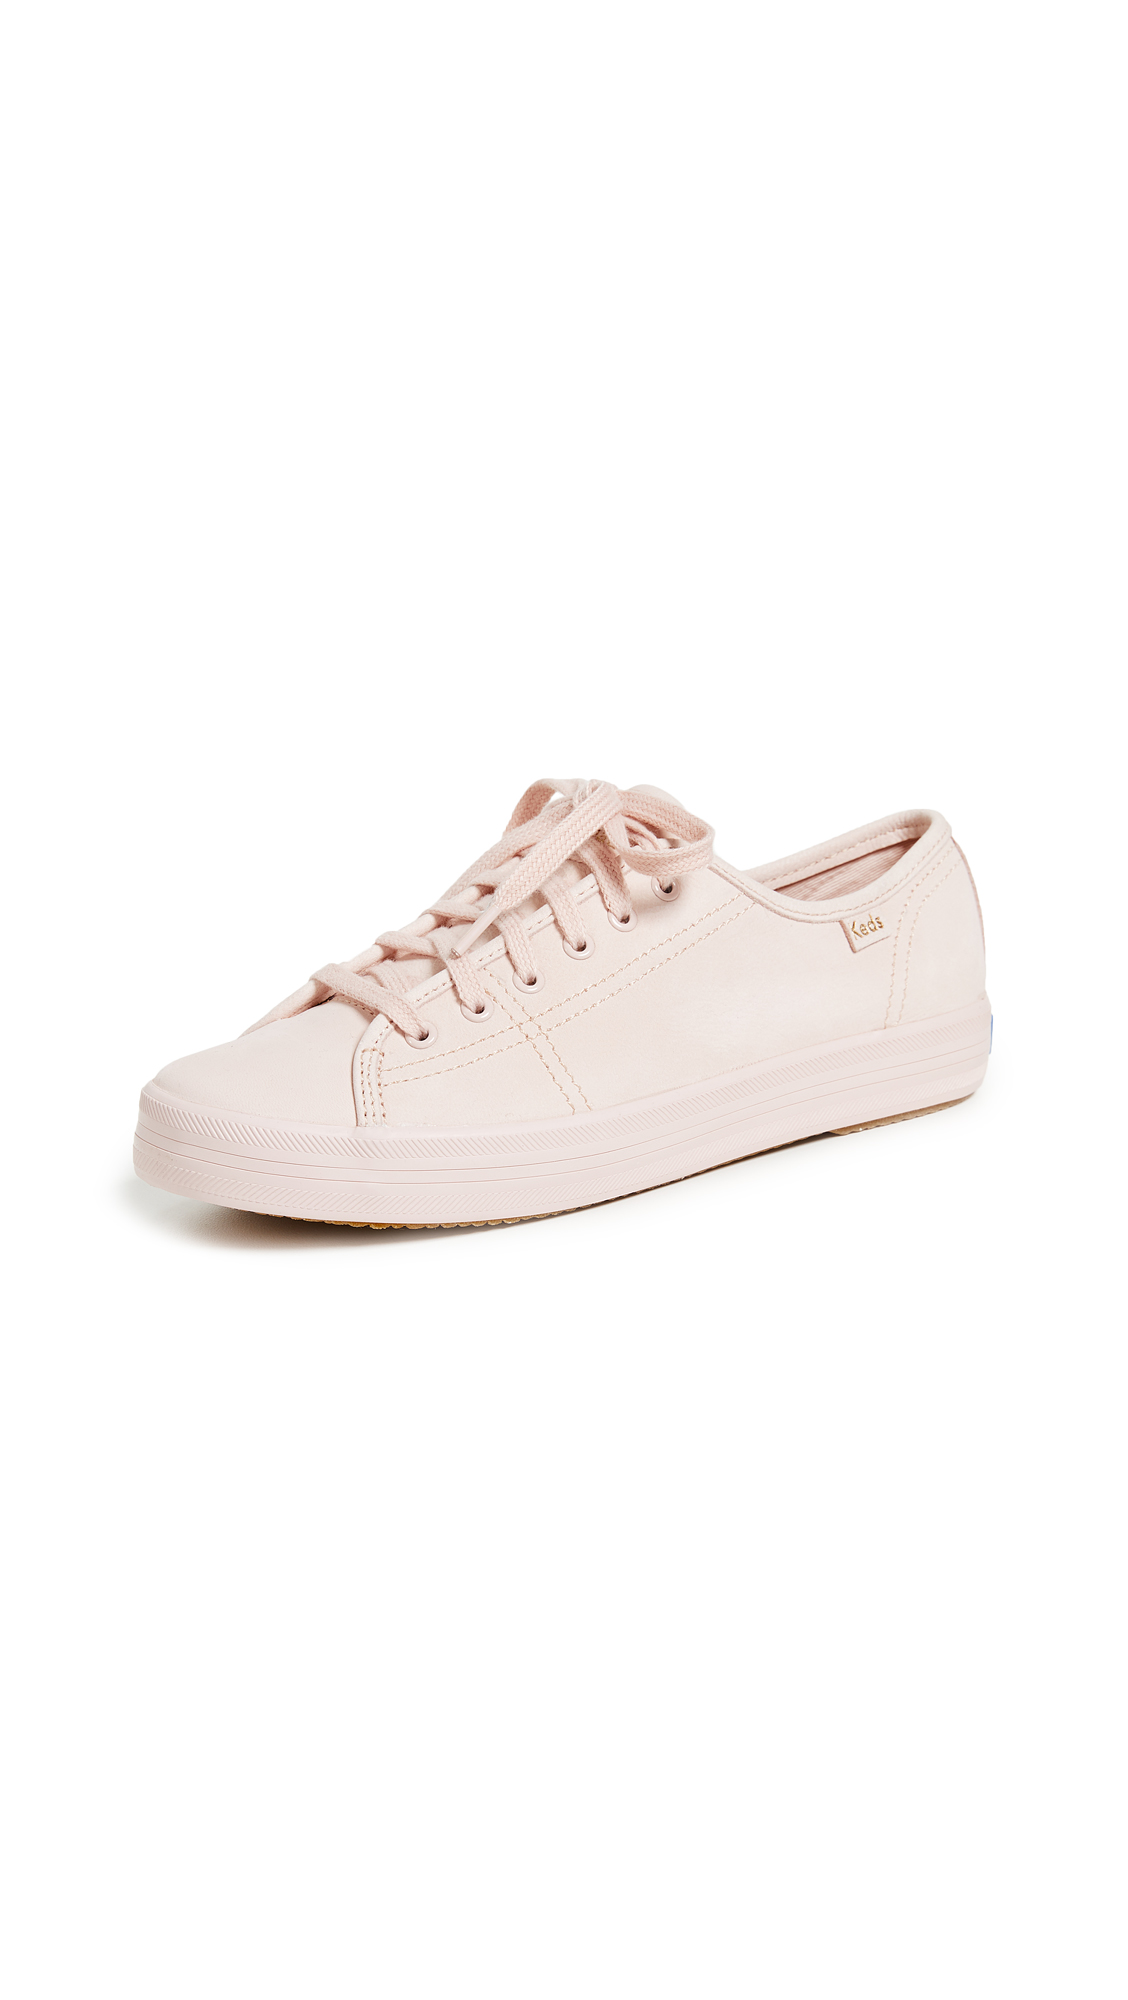 Keds x Kate Spade New York Kickstart Sneakers - Light Pink